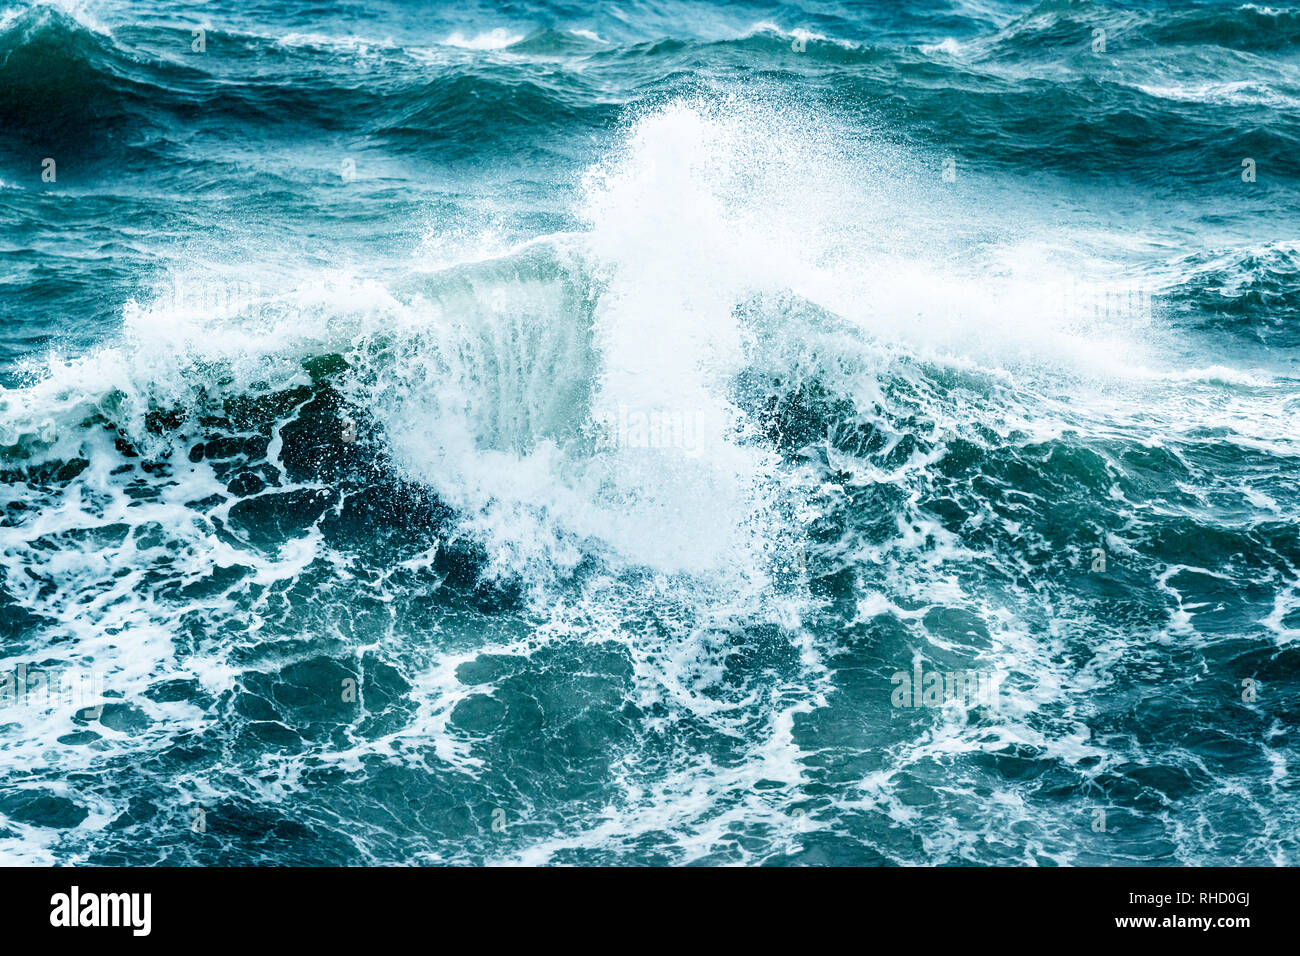 Beautiful stormy sea, abstract natural background, breaking waves, nature disaster, hurricane on the sea, power of the nature - Stock Image